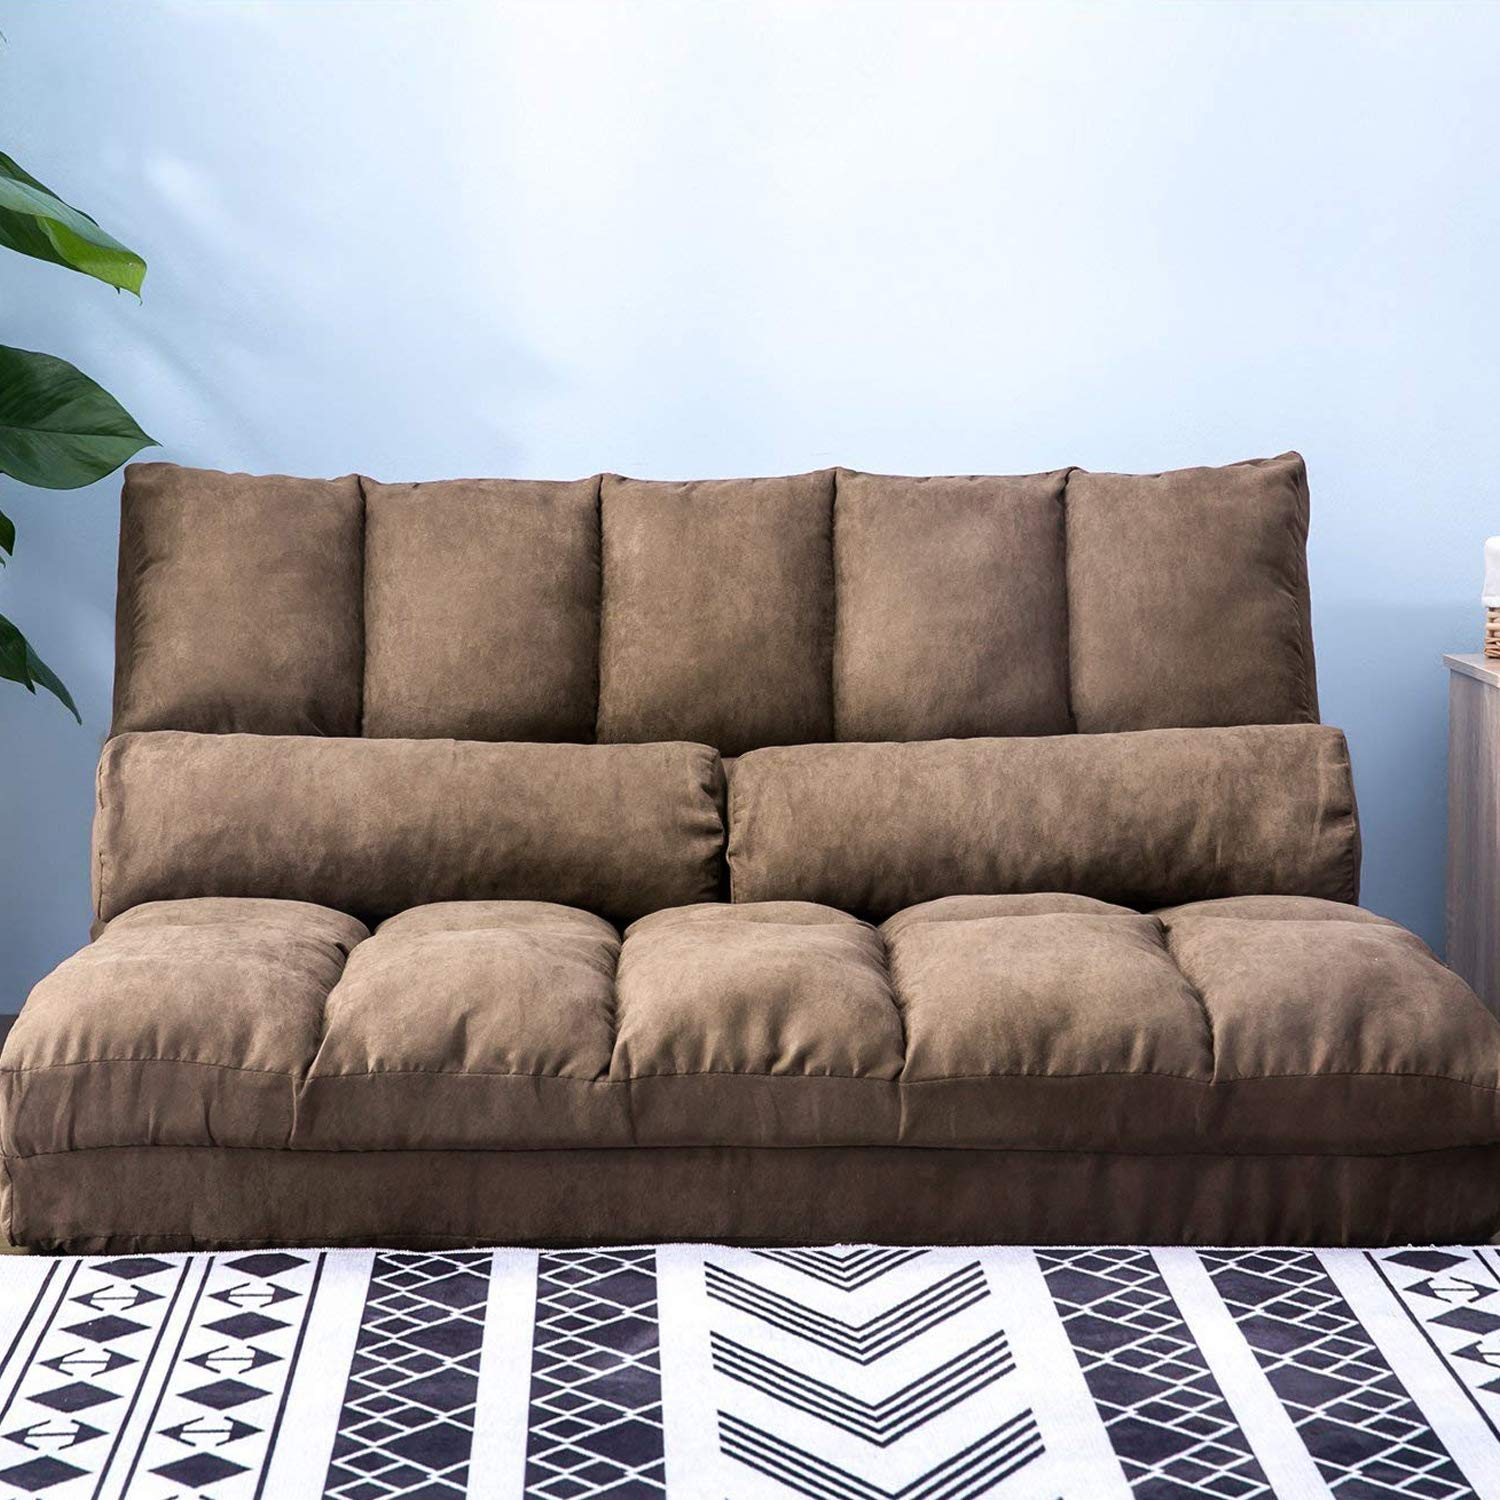 - YSKWA Double Chaise Lounge Sofa Chair Floor Couch With Two Pillows